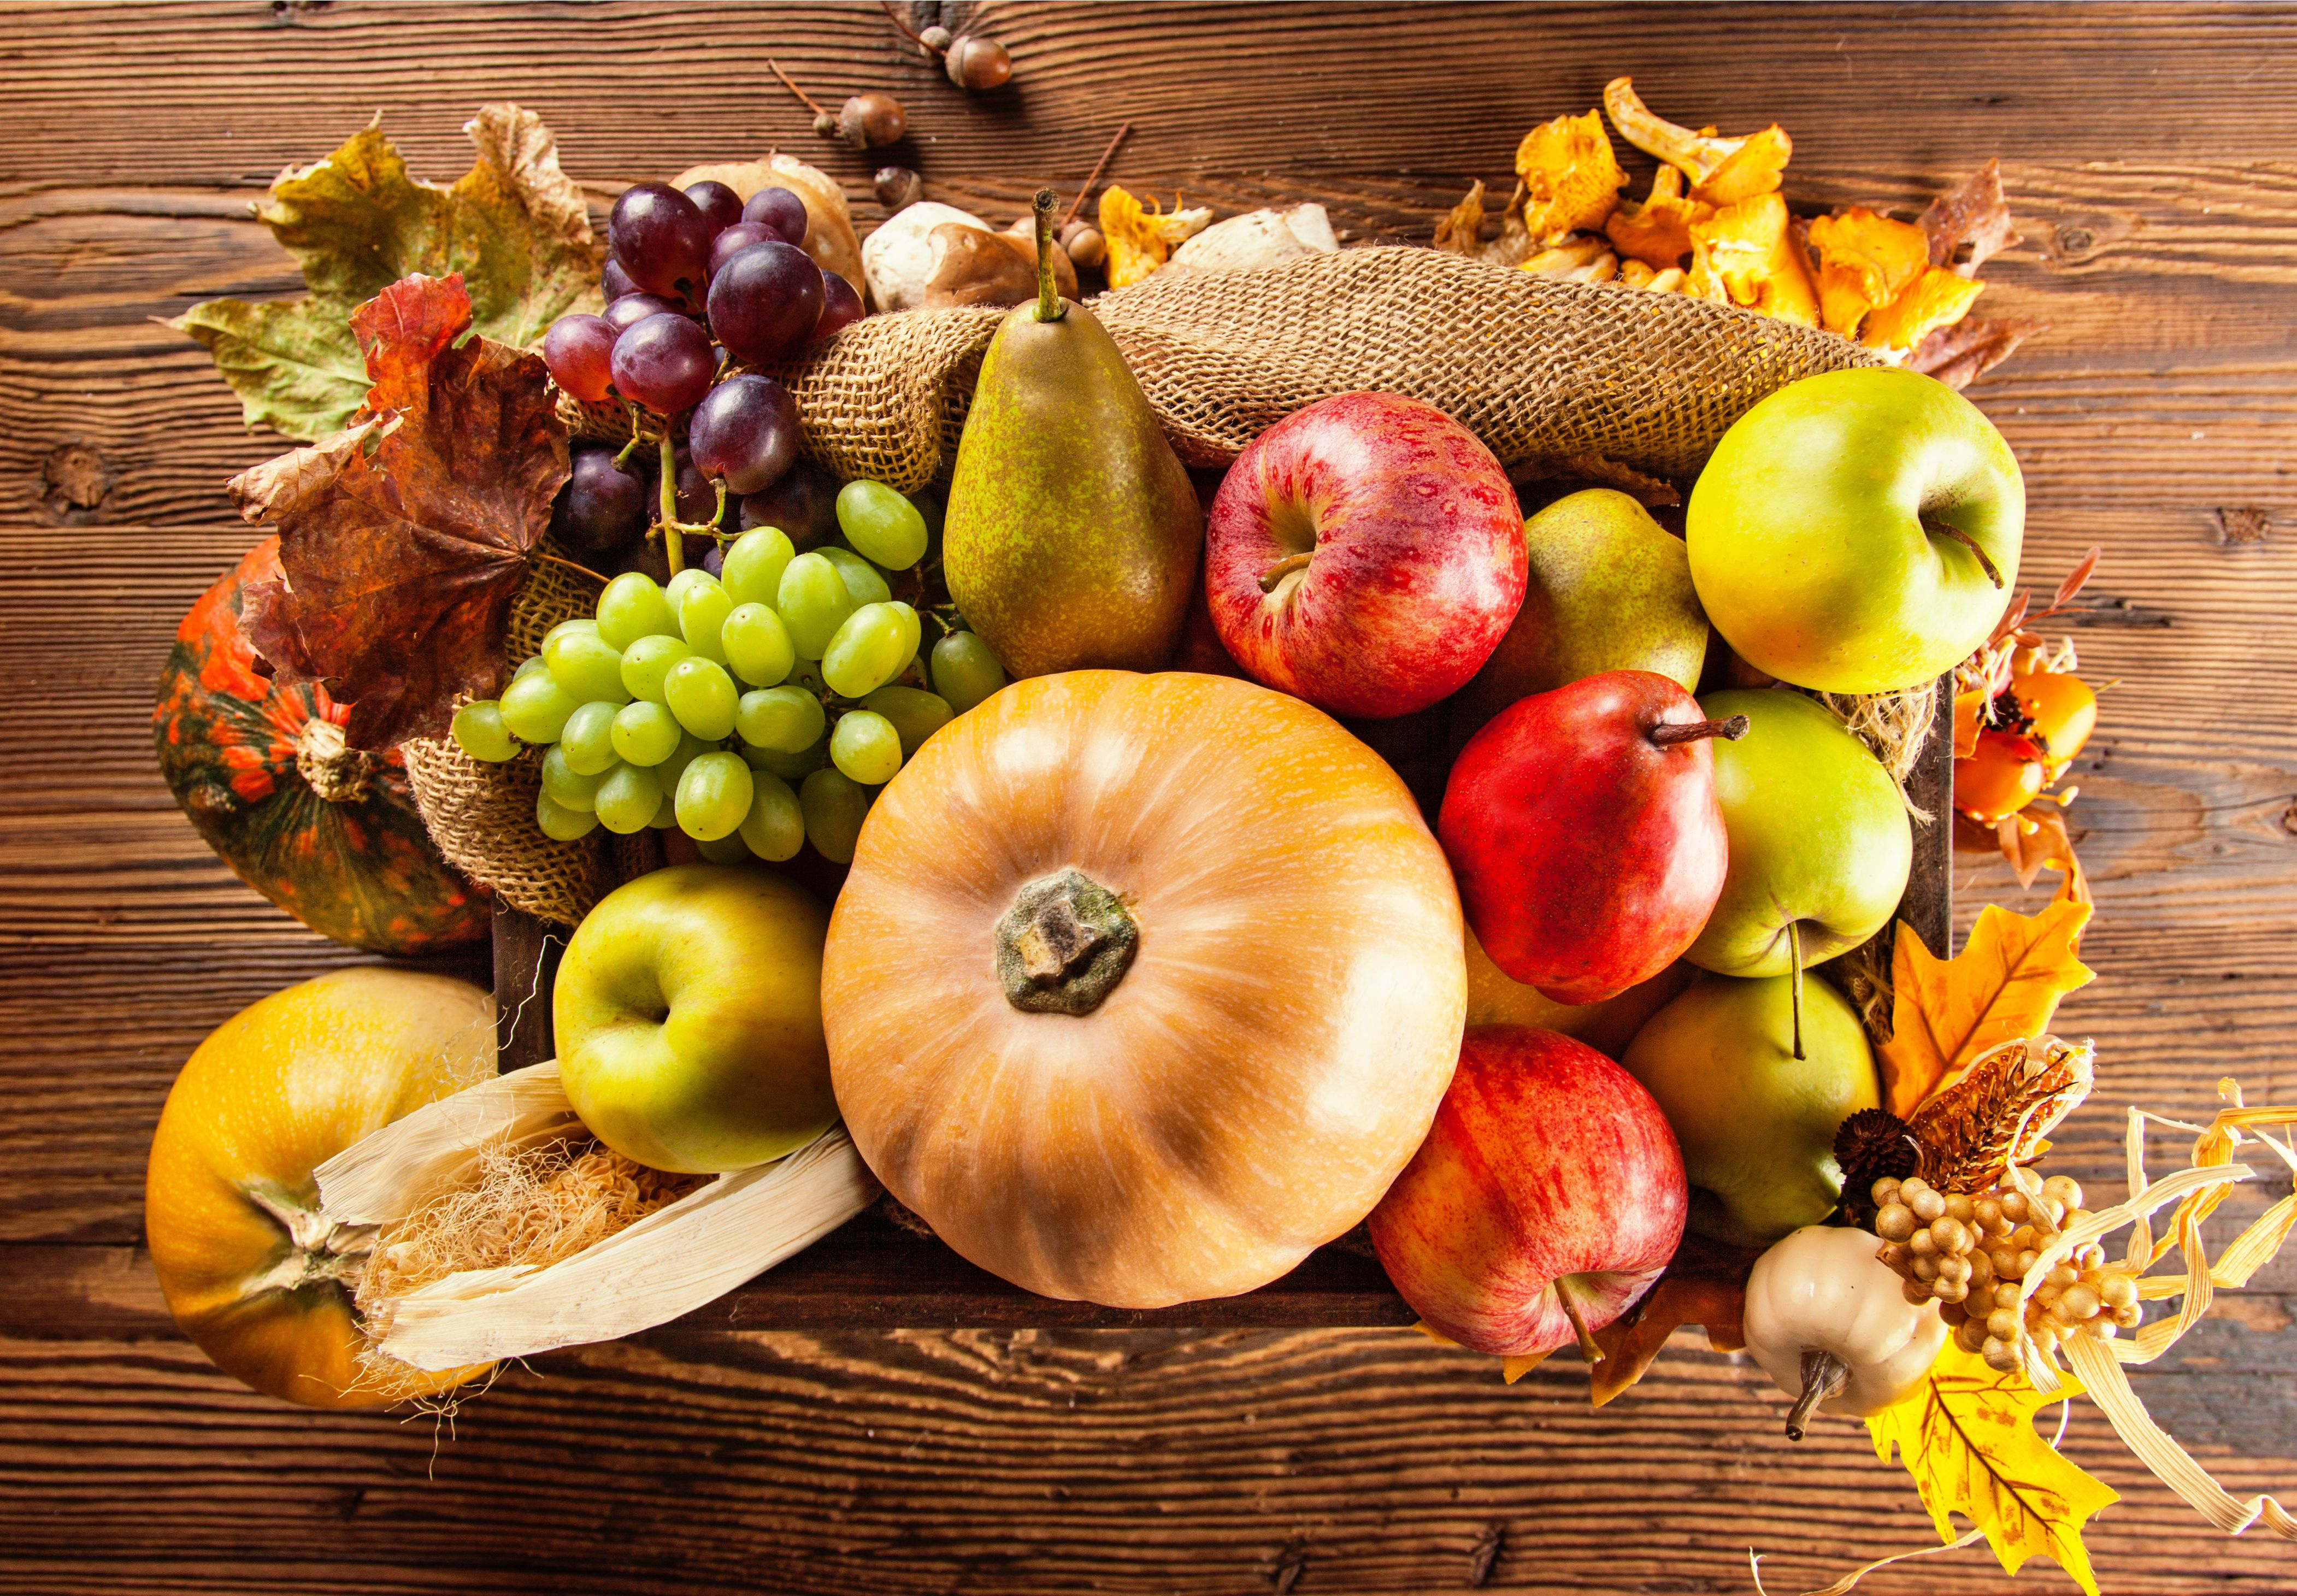 Image result for autumn food | Fruit in season, Fruit, Fruits and veggies